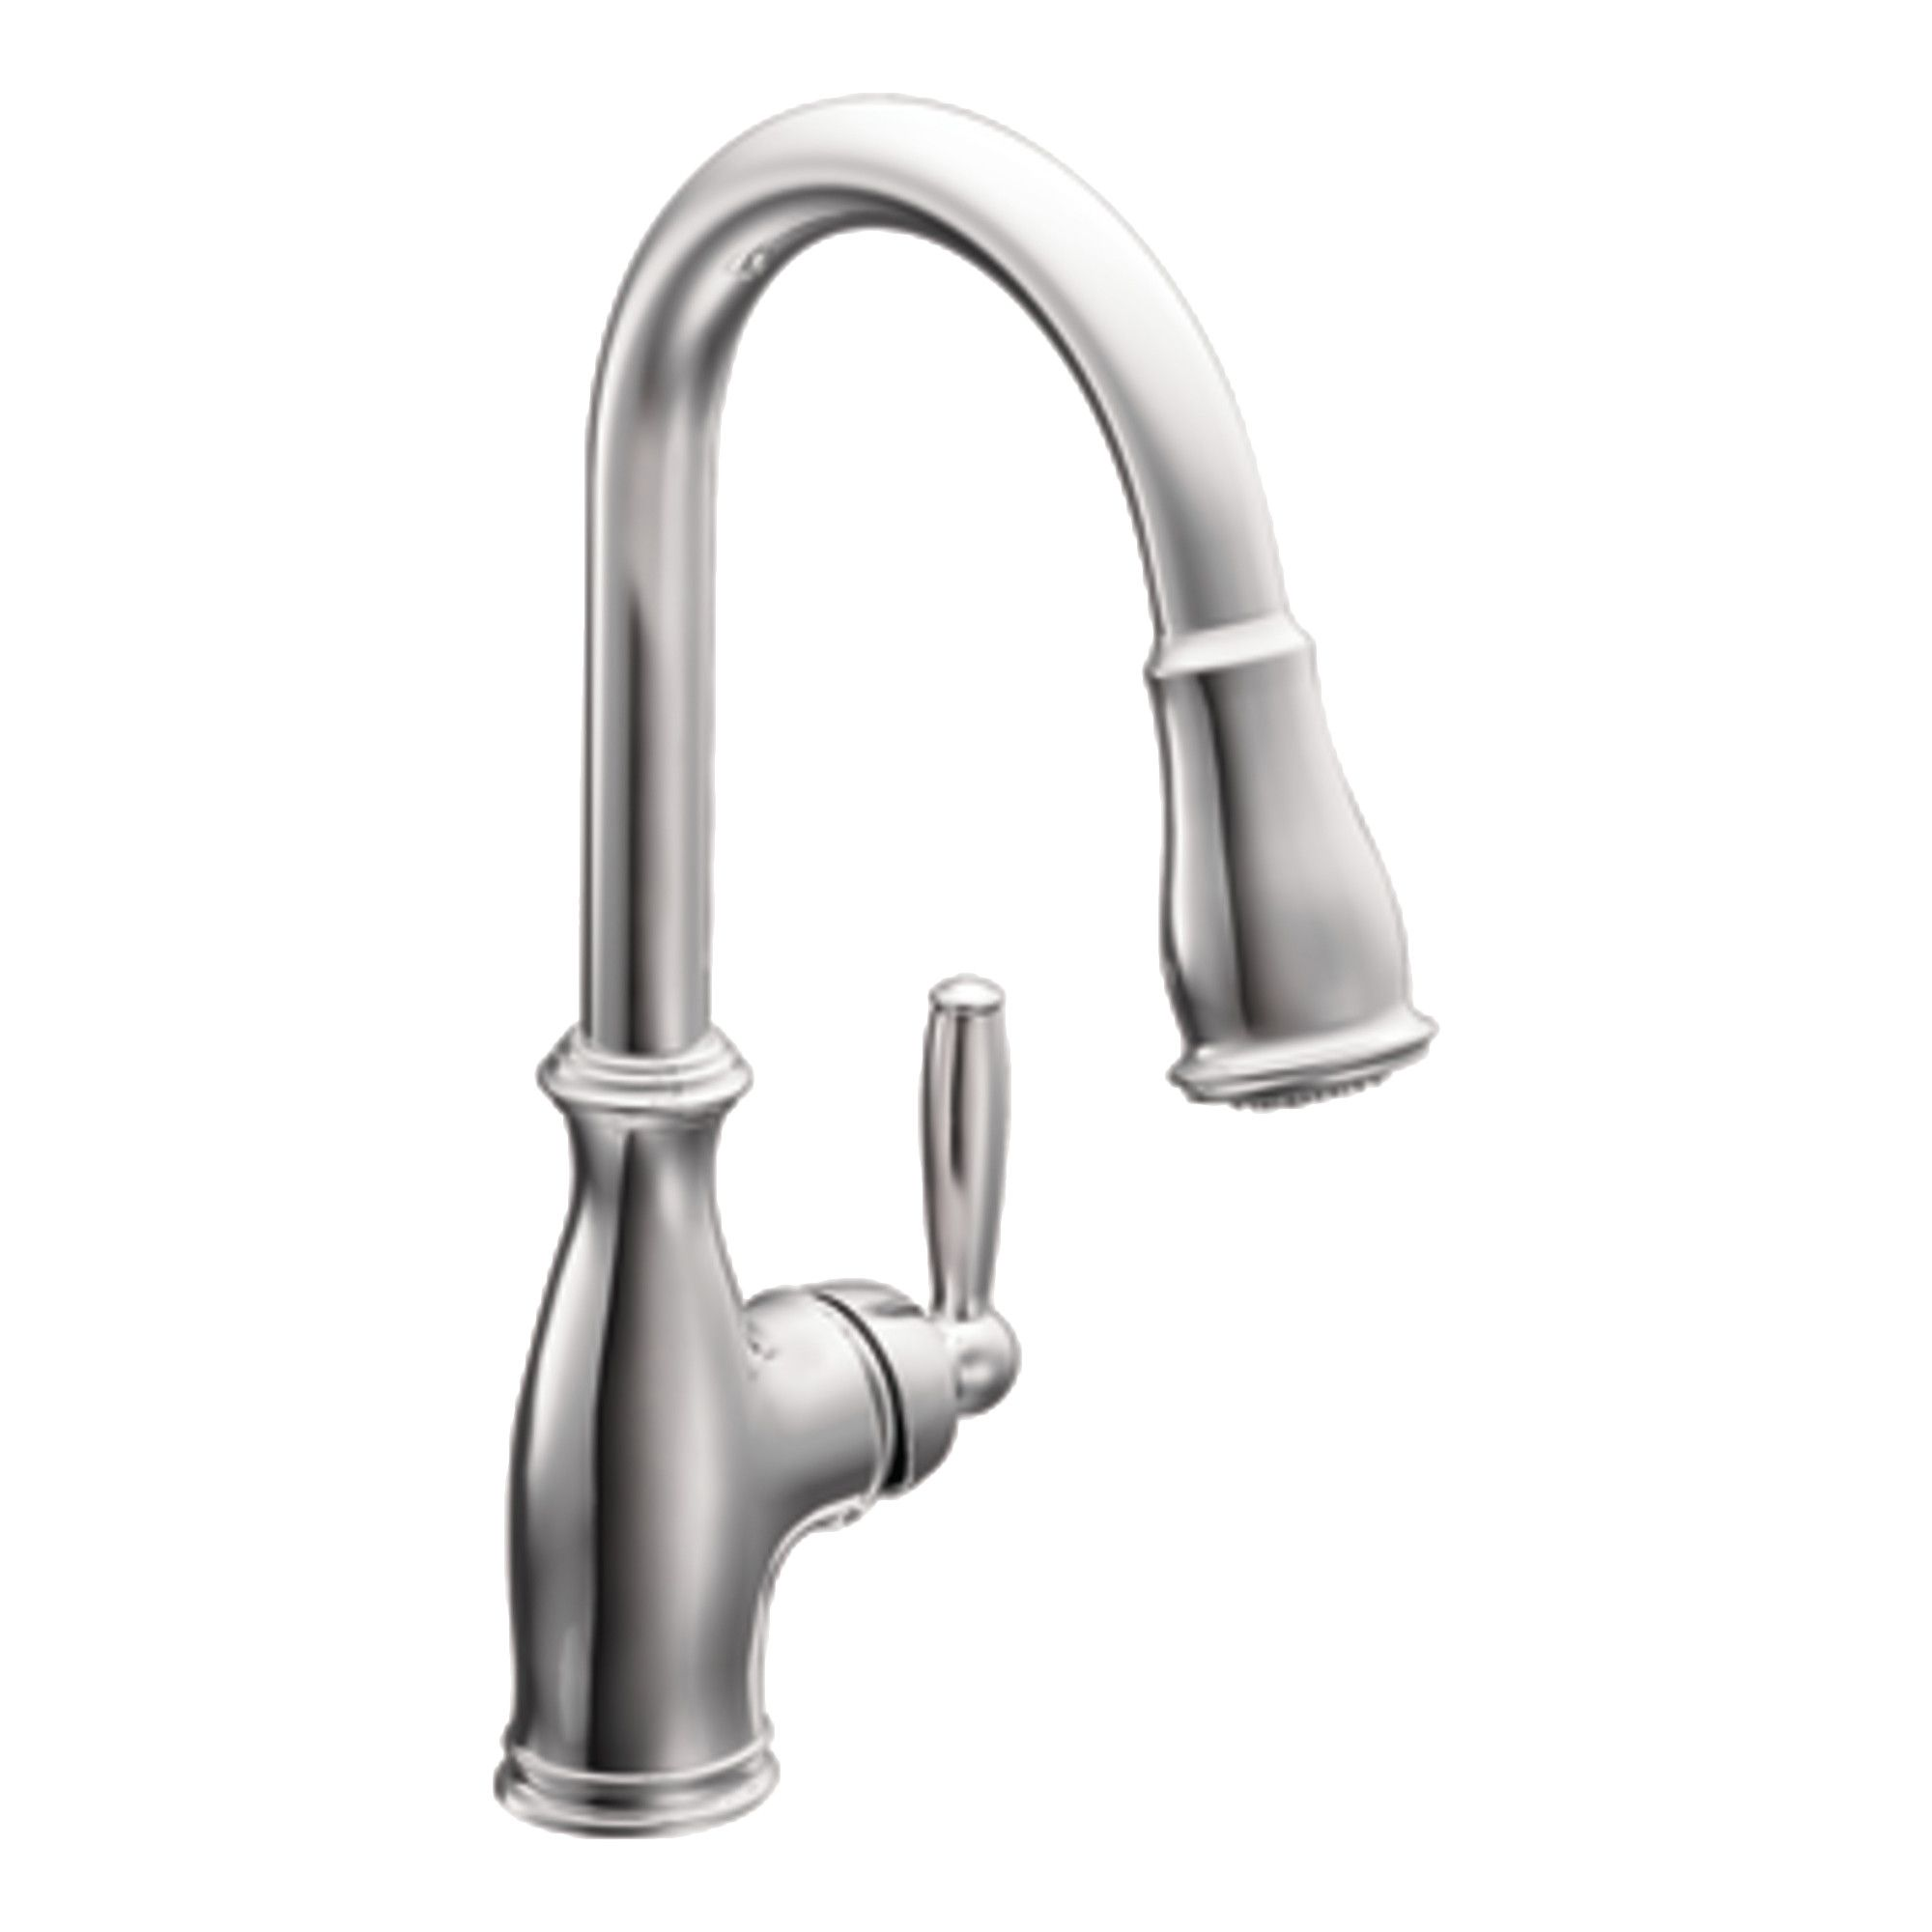 repair parts size leaking kitchen out of instructions down o spare leaky bathroom to spout handle full astonishing base fix pull around dripping a single sink how faucet is moen rings my